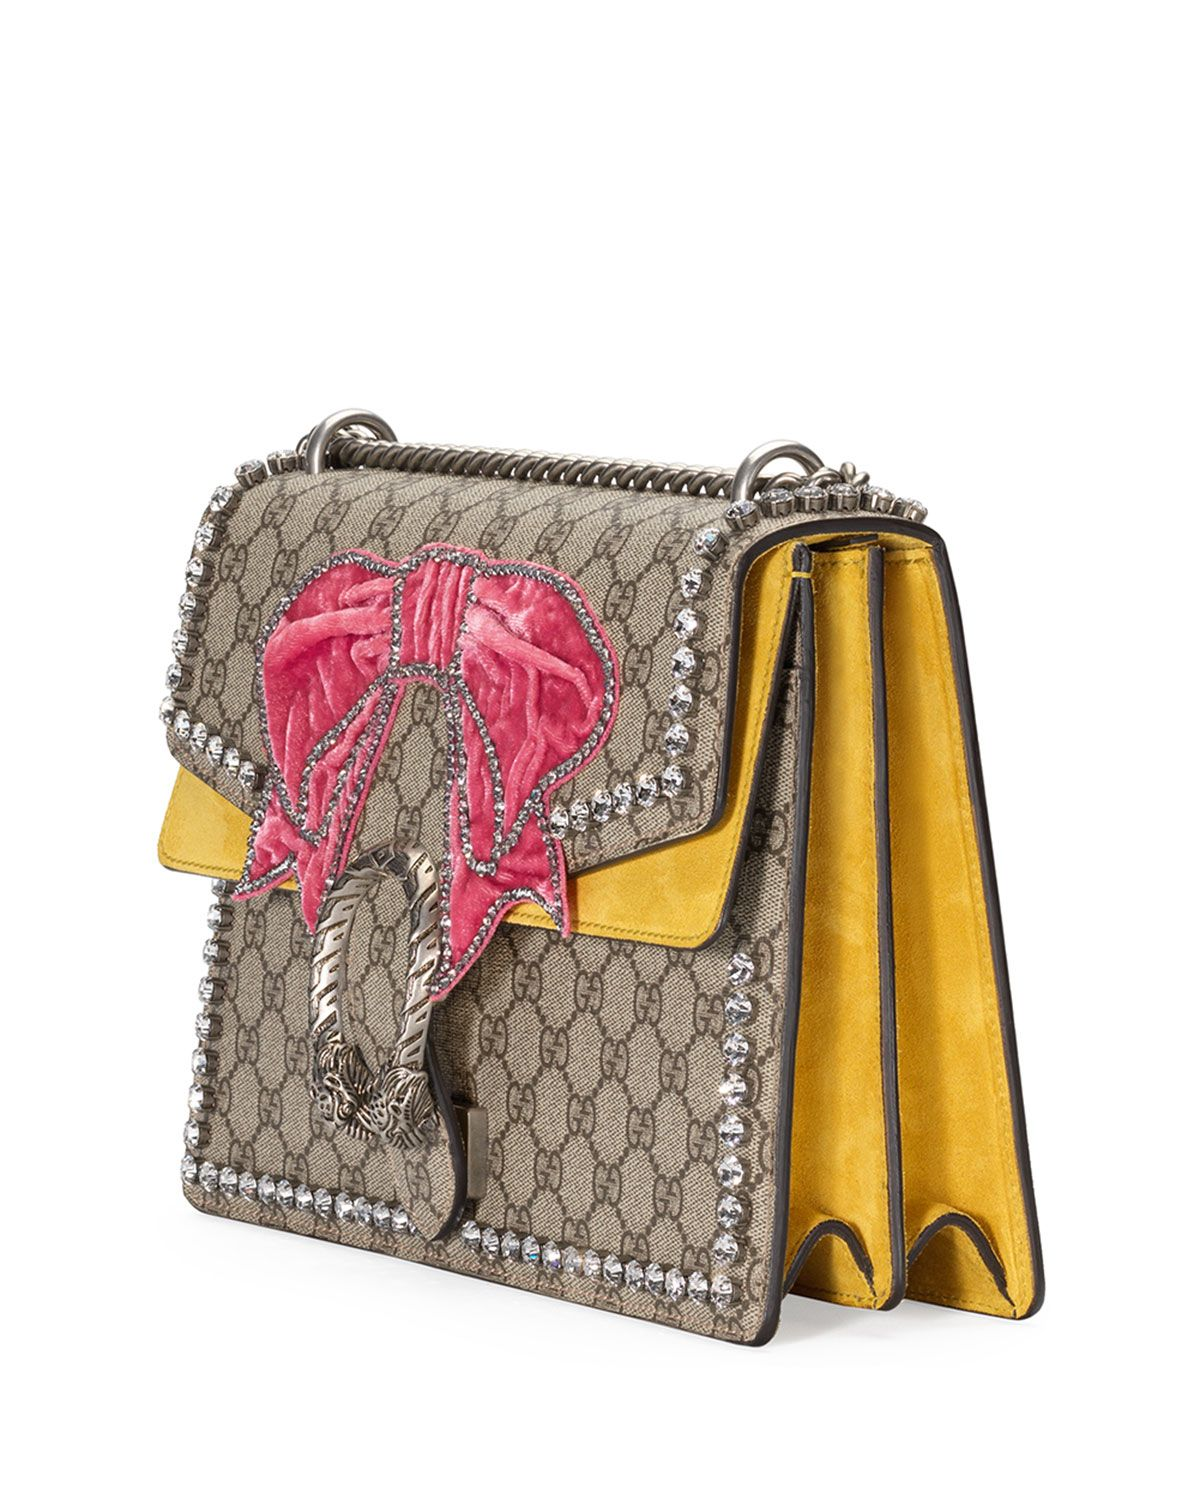 Gucci Dionysus Medium GG Supreme Canvas Shoulder Bag with Crystal Bow 6zS5vU